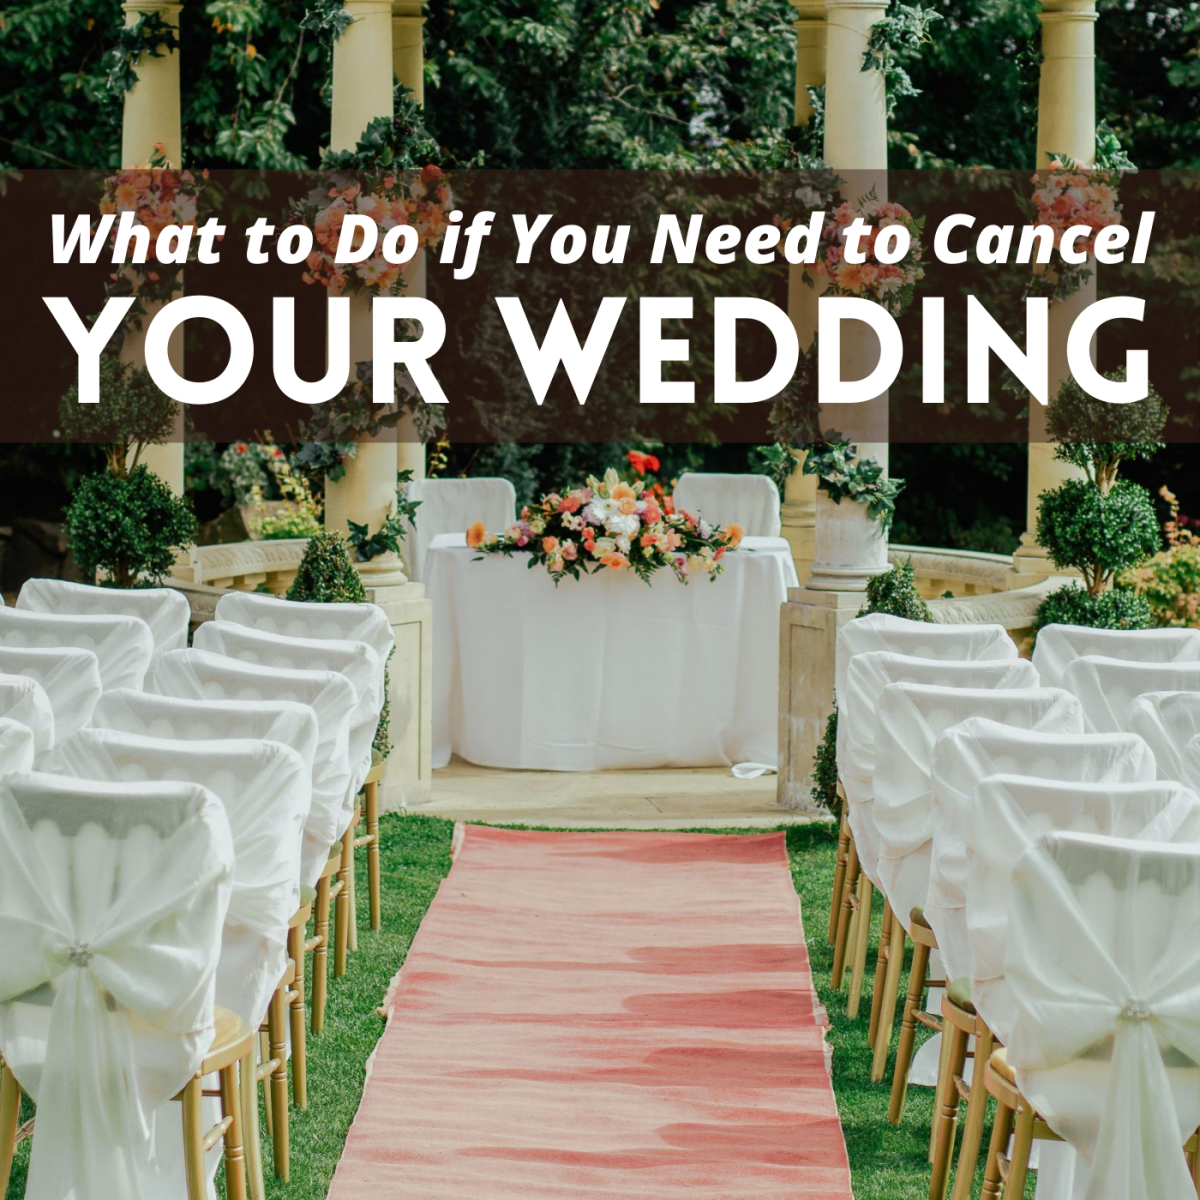 Can't afford your wedding? Thinking about canceling or postponing? Explore your options here.